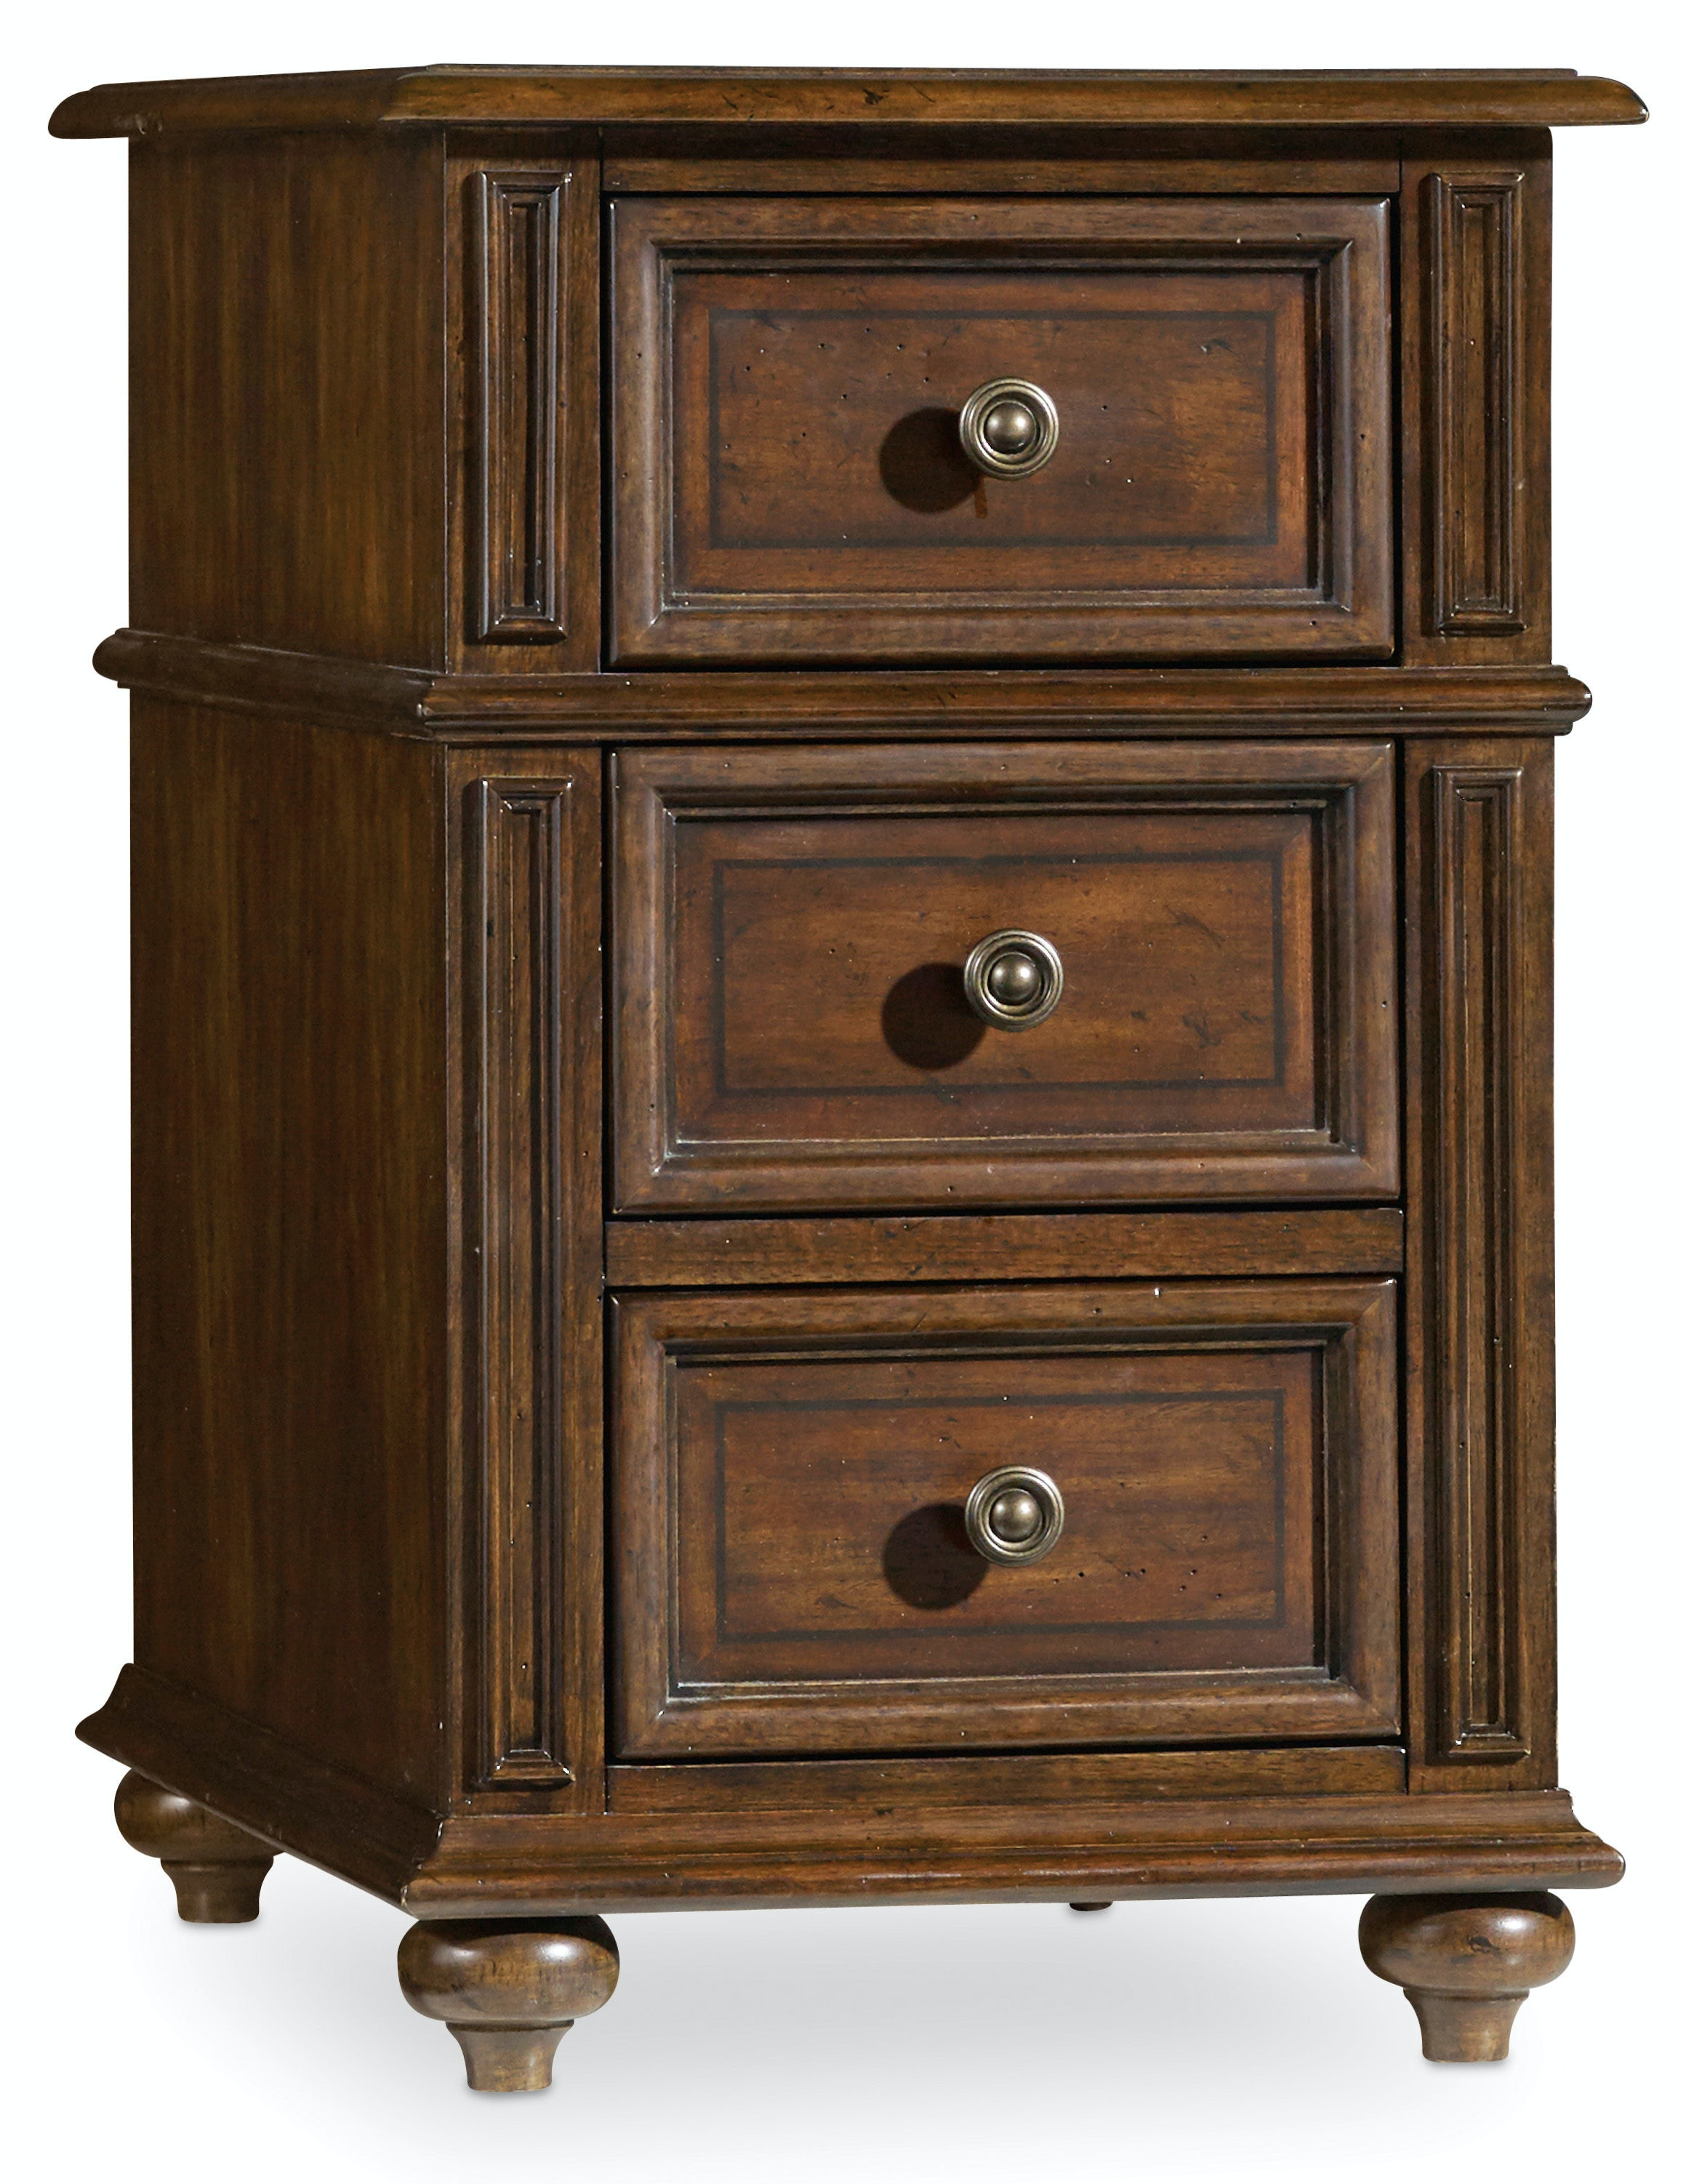 Charming Chairside Chest #28 - Woodleyu0027s Fine Furniture